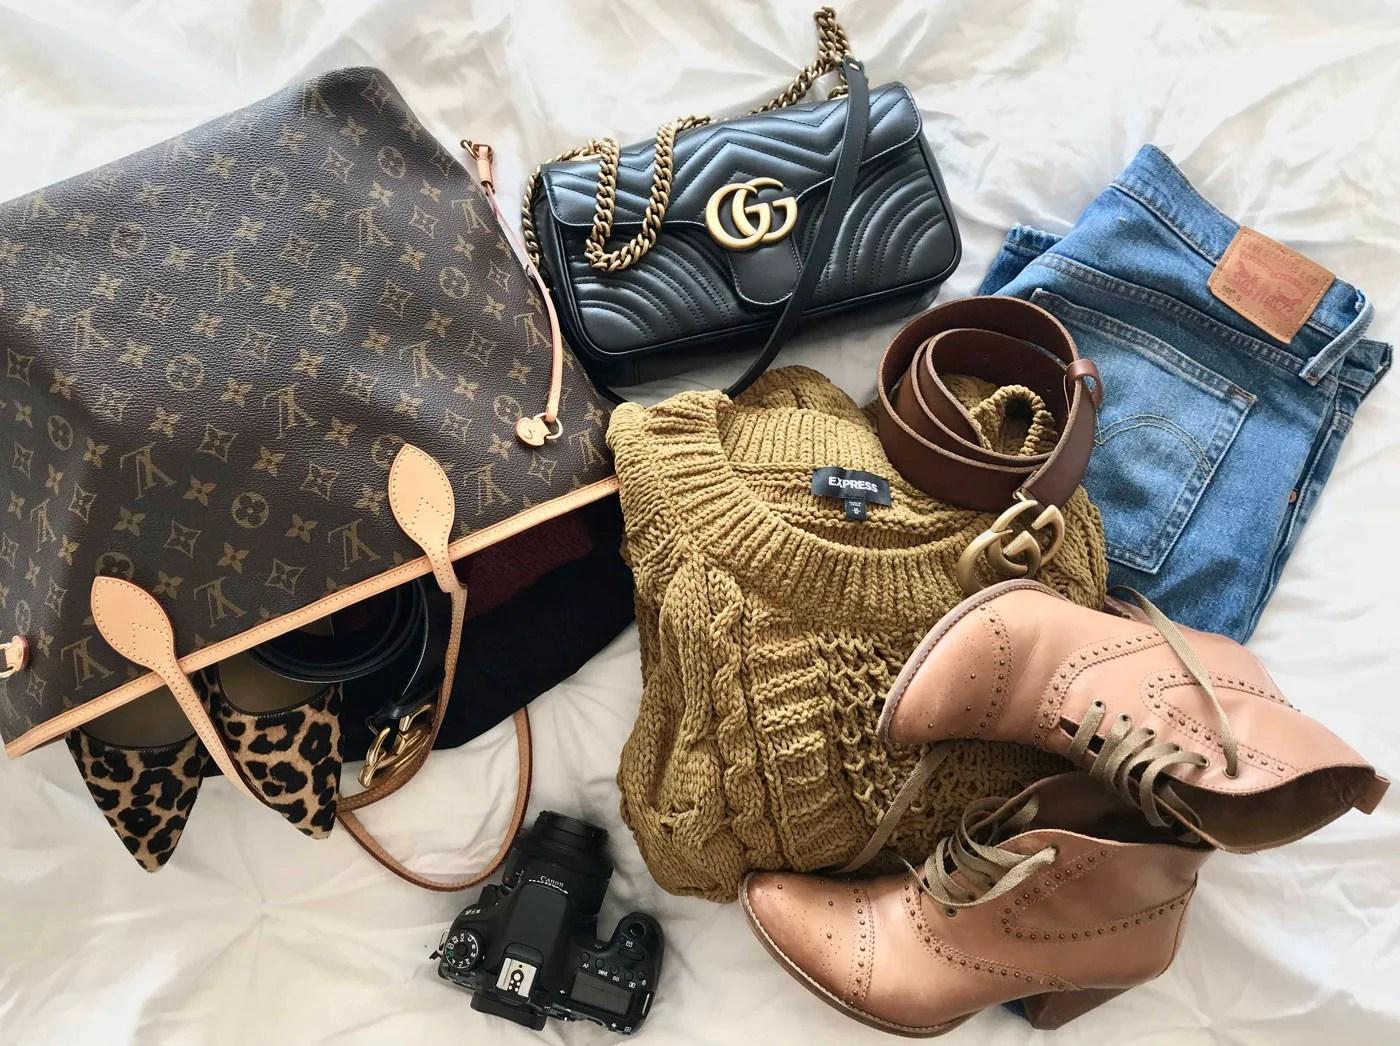 Express Cable Knit Chenille Sweater, Levi's 501, Gucci Belt, Gucci Marmont Bag, Louis Vuitton Neverfull